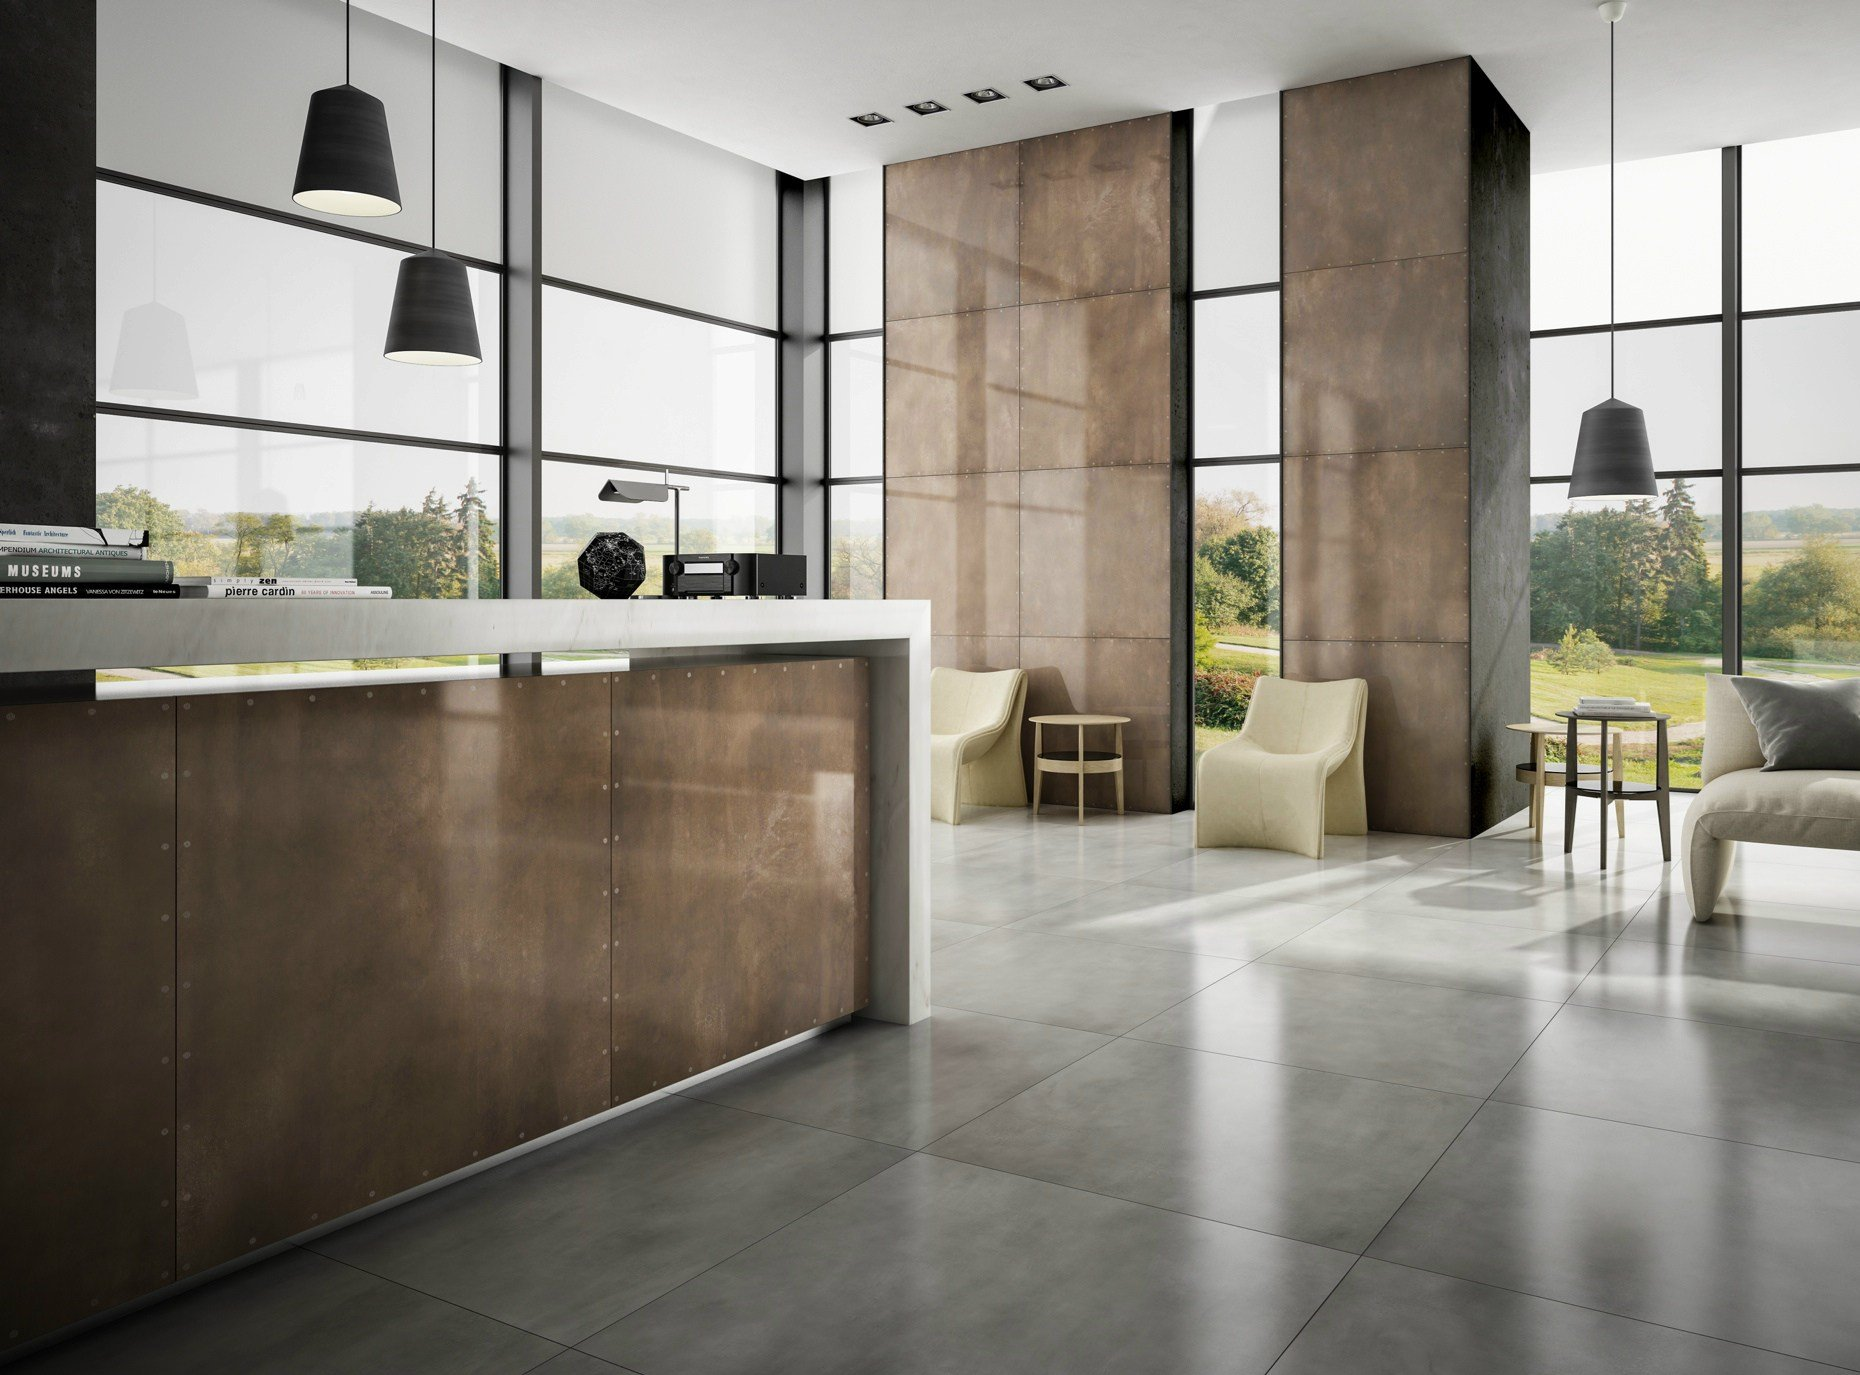 Porcelain stoneware wall floor tiles with metal effect for Carrelage casalgrande padana